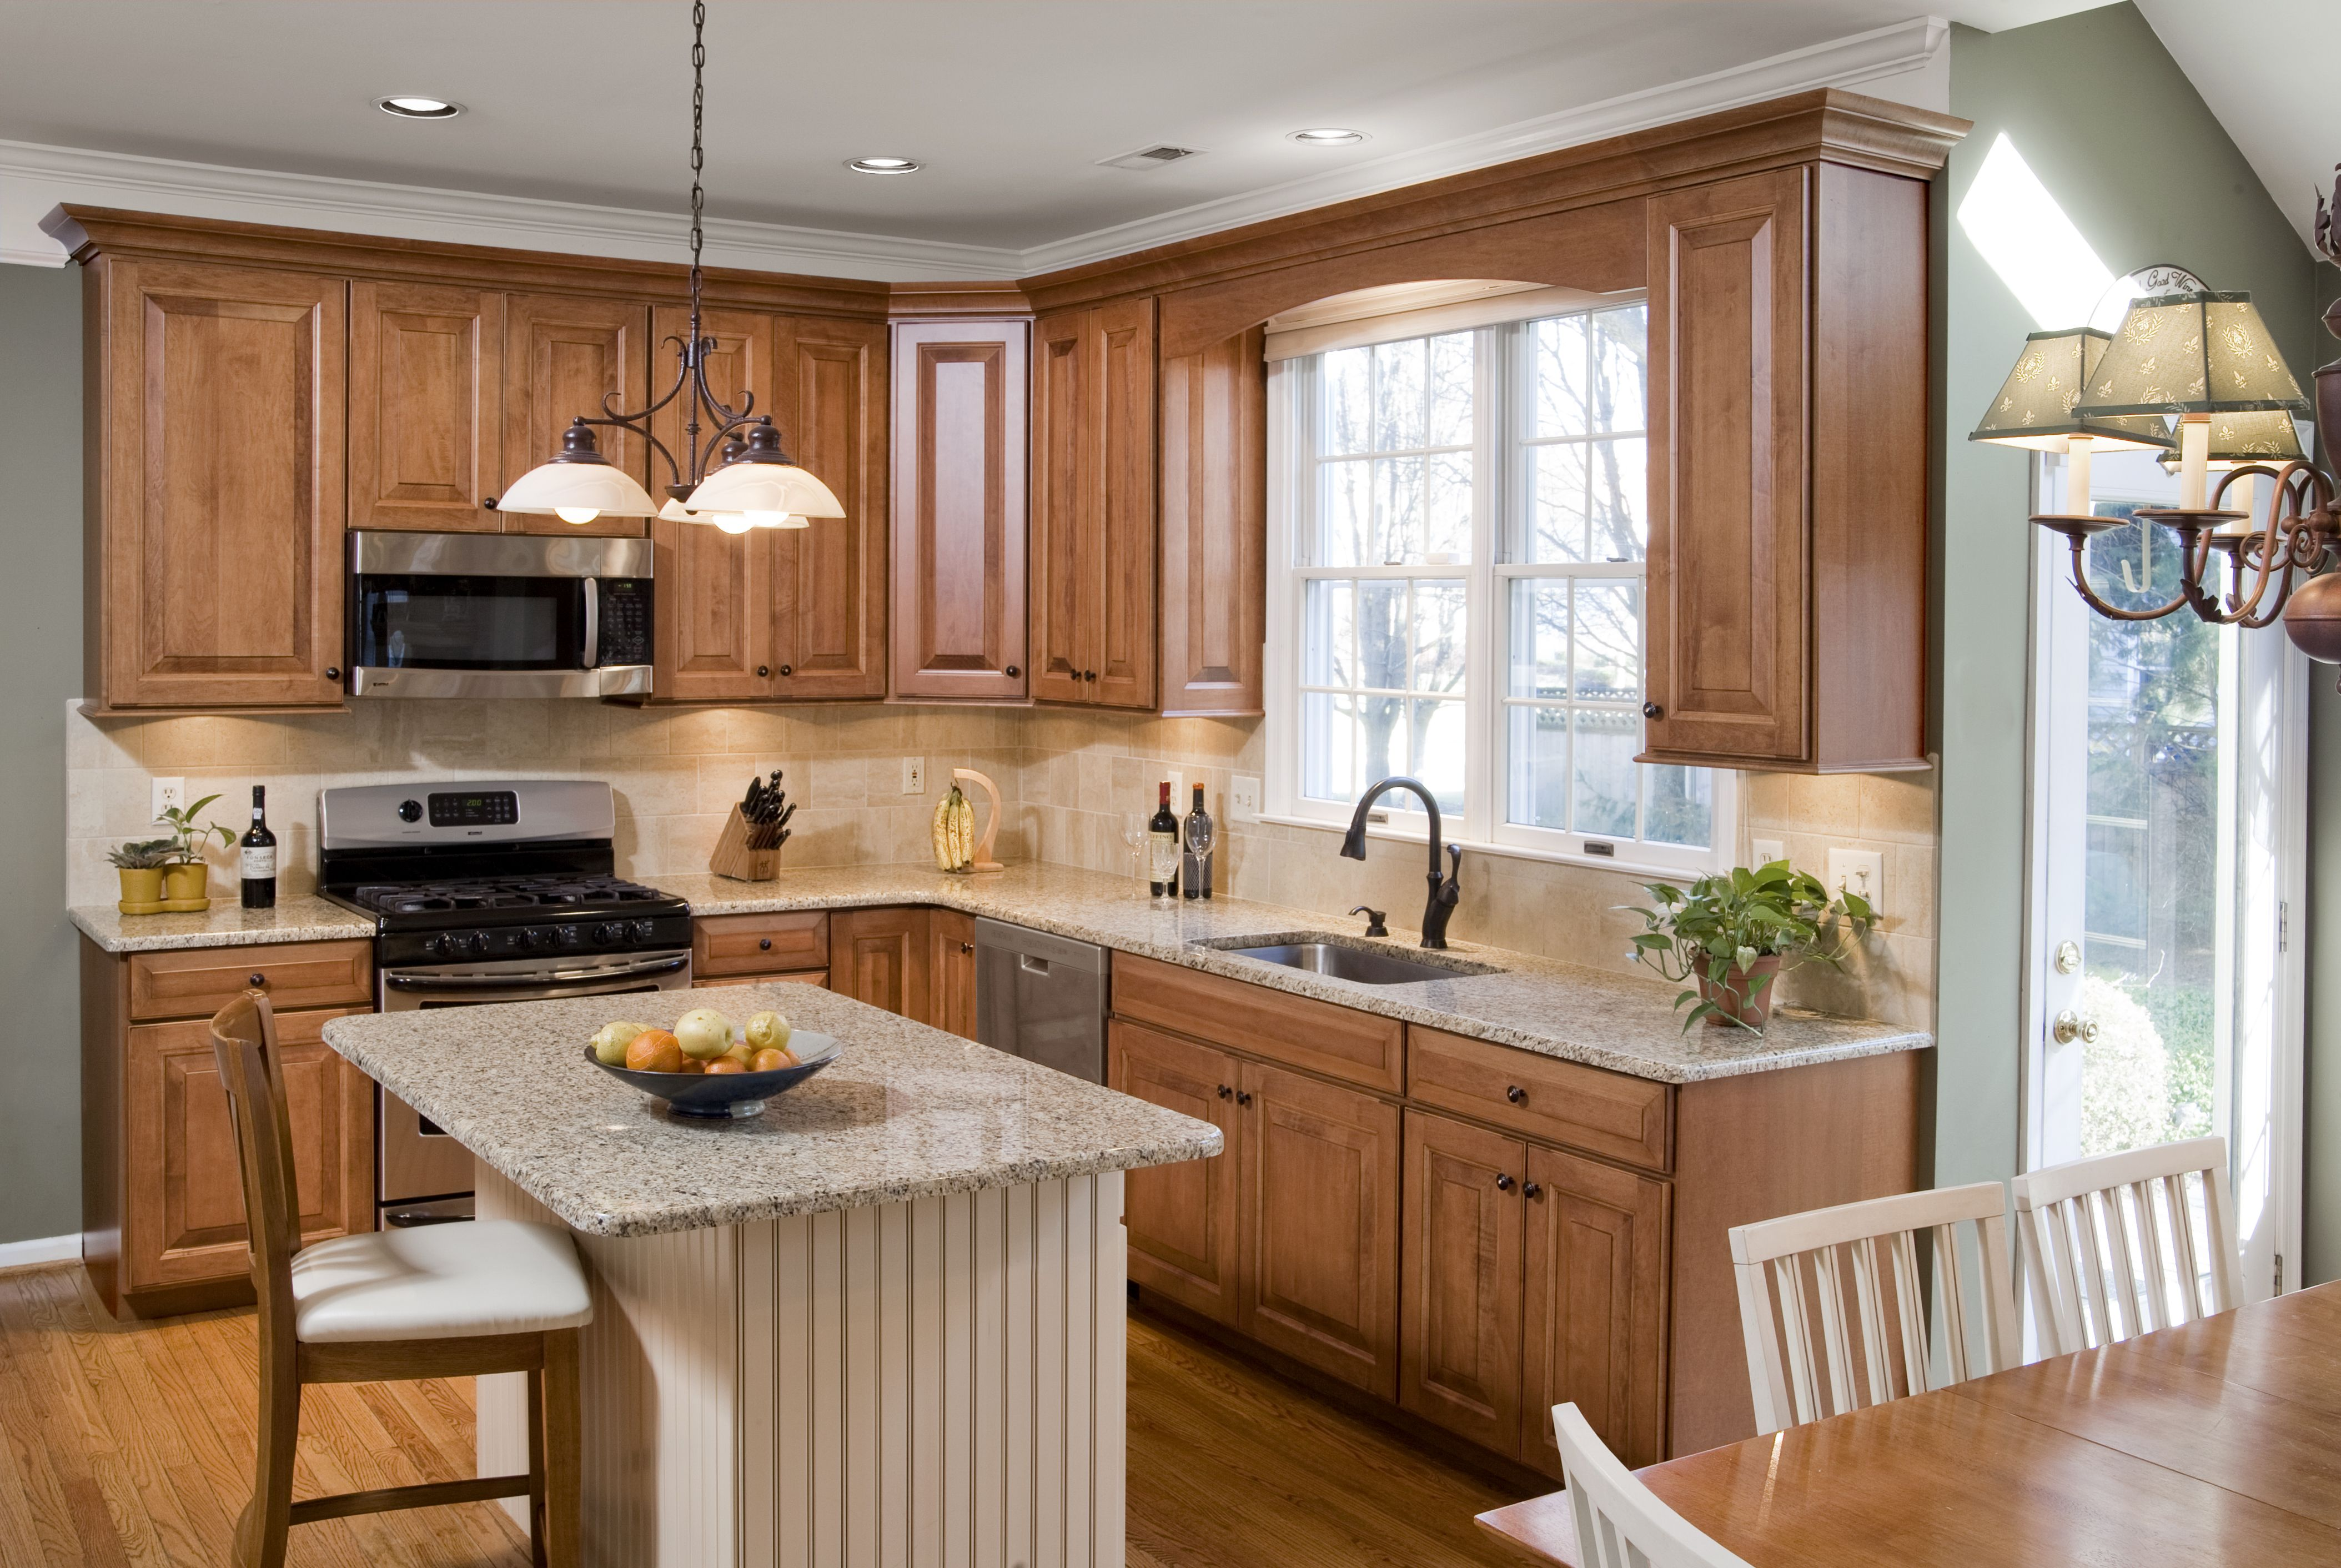 kitchen remodel small cost internetsaleco kitchen stool internetsaleco small kitchen remodeling on kitchen remodel ideas id=55234